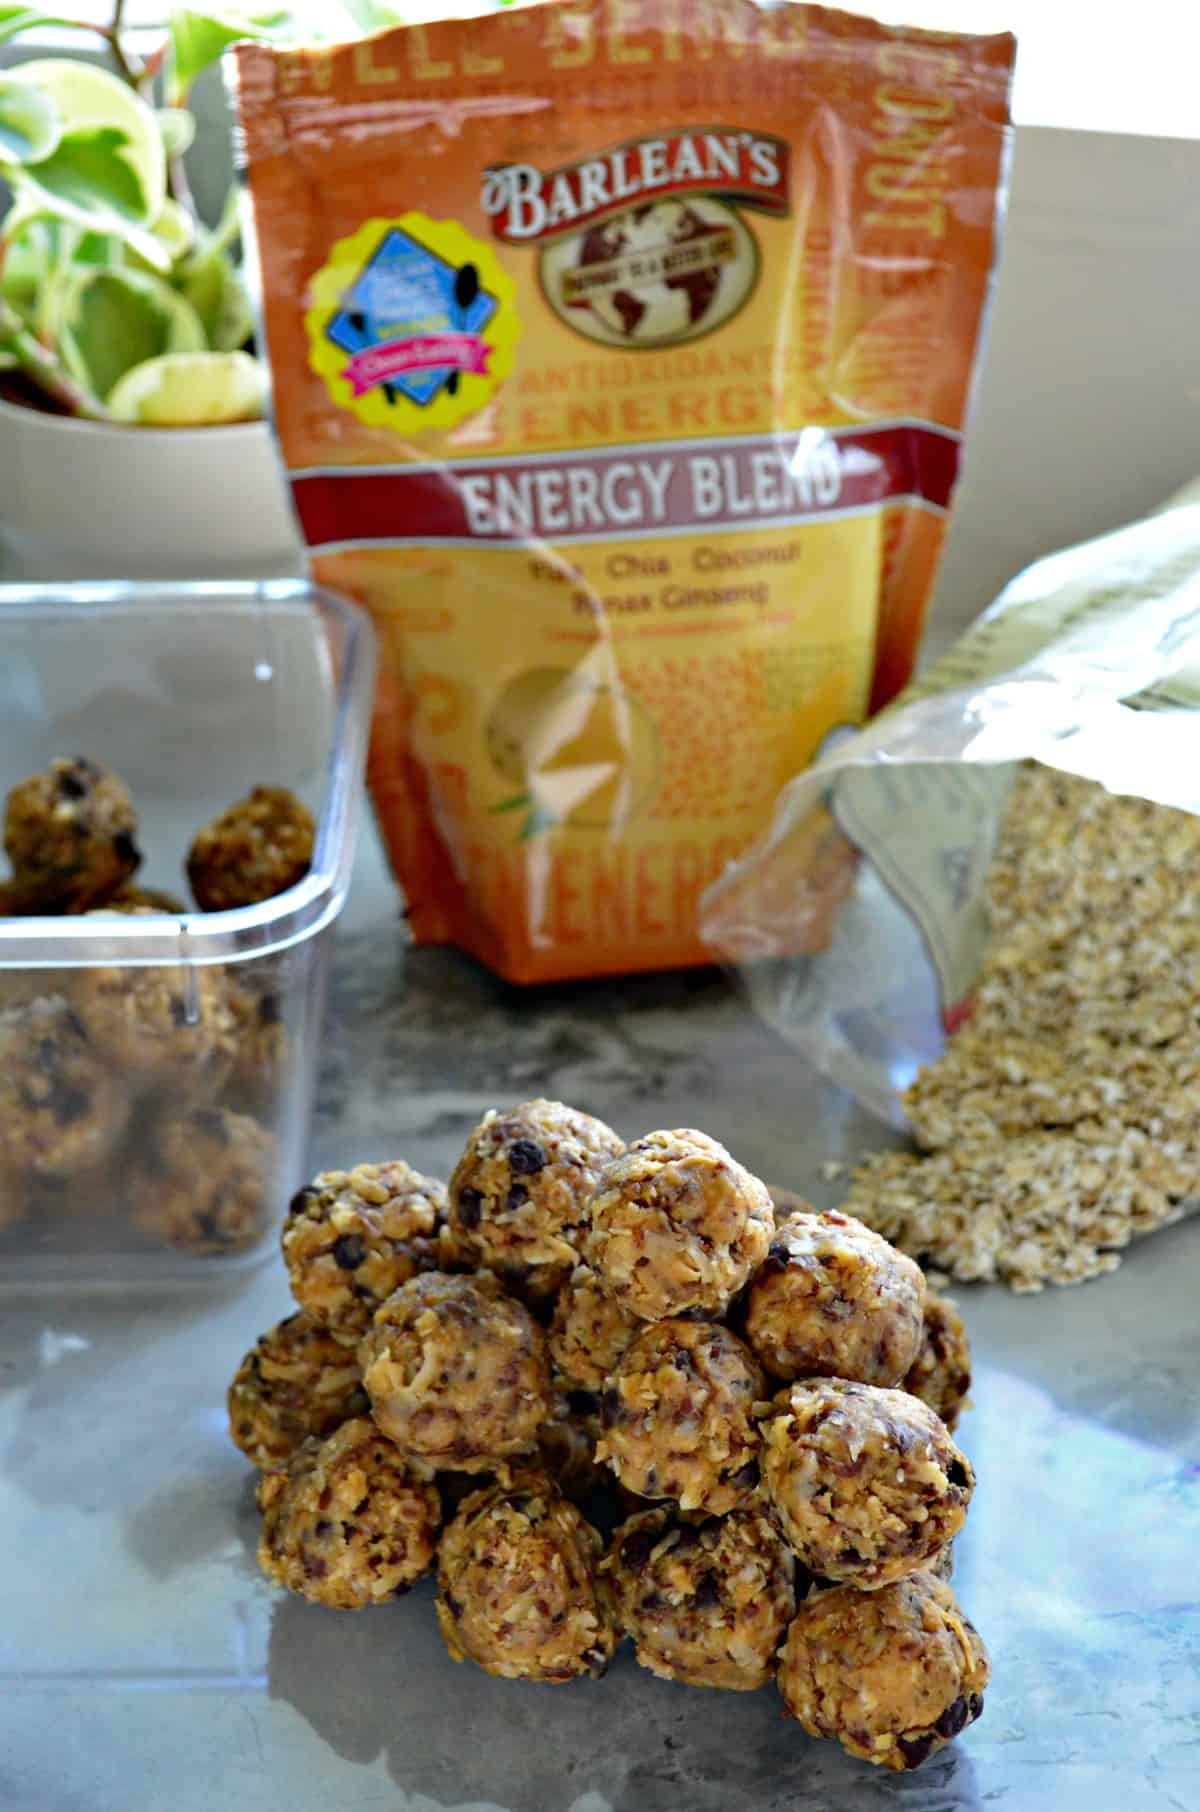 Peanut Butter Chocolate Chip Protein Balls stacked on countertop in front of ingredients and tupperware.